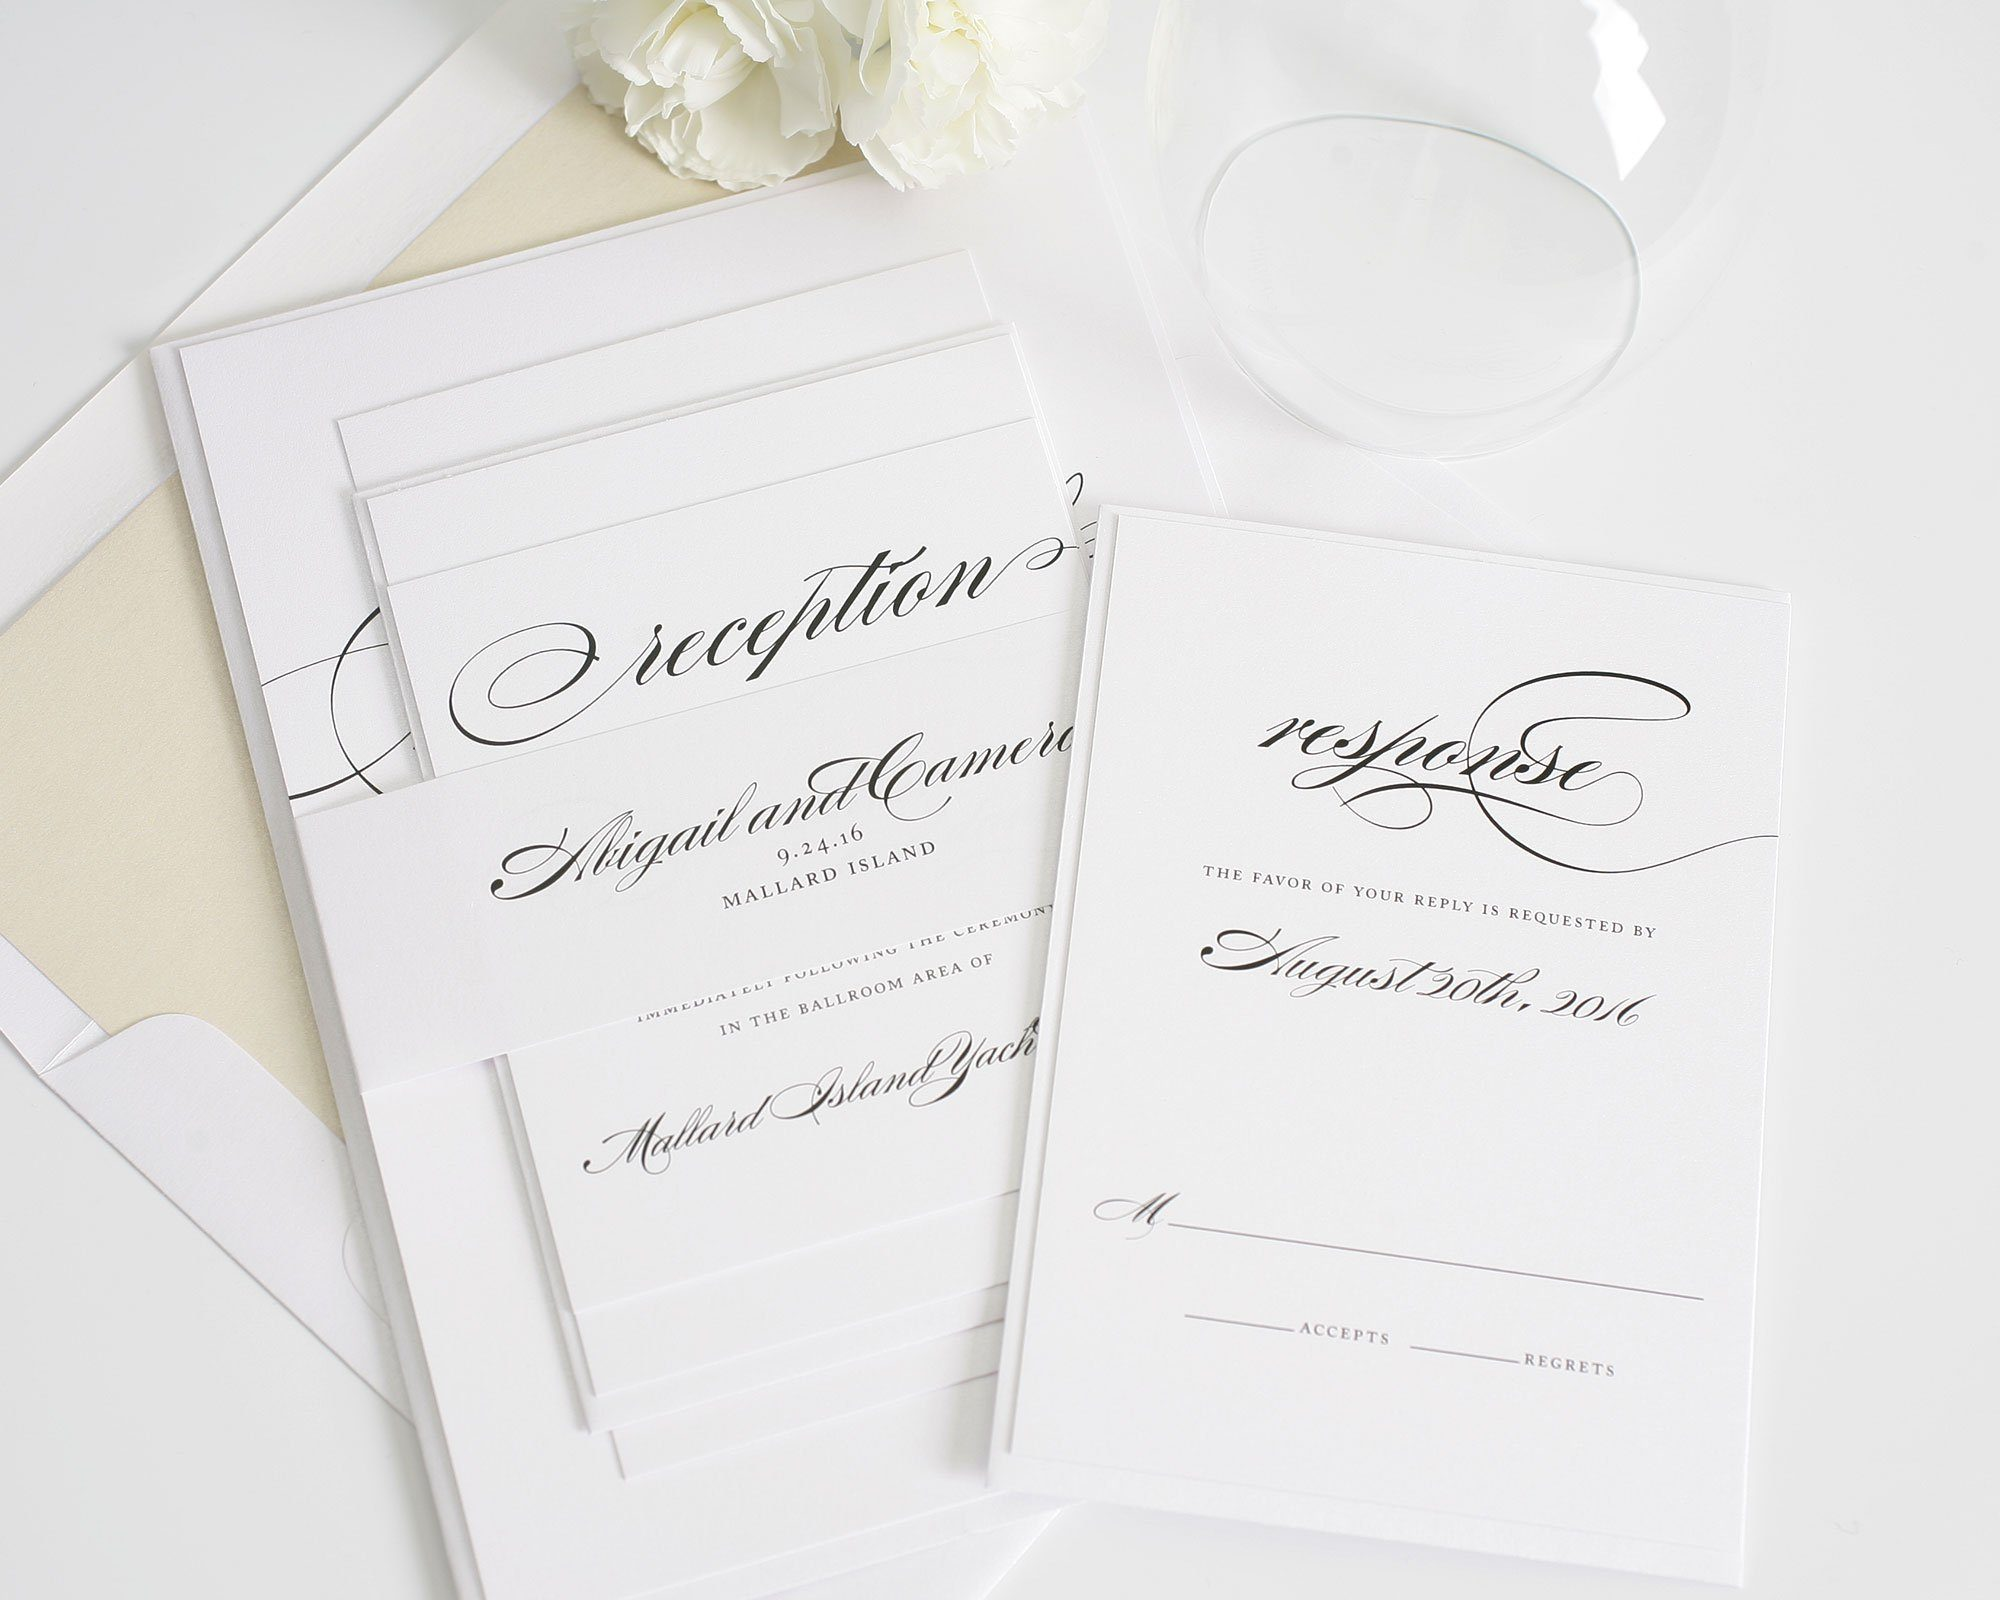 Classic wedding invitations in champagne and ivory